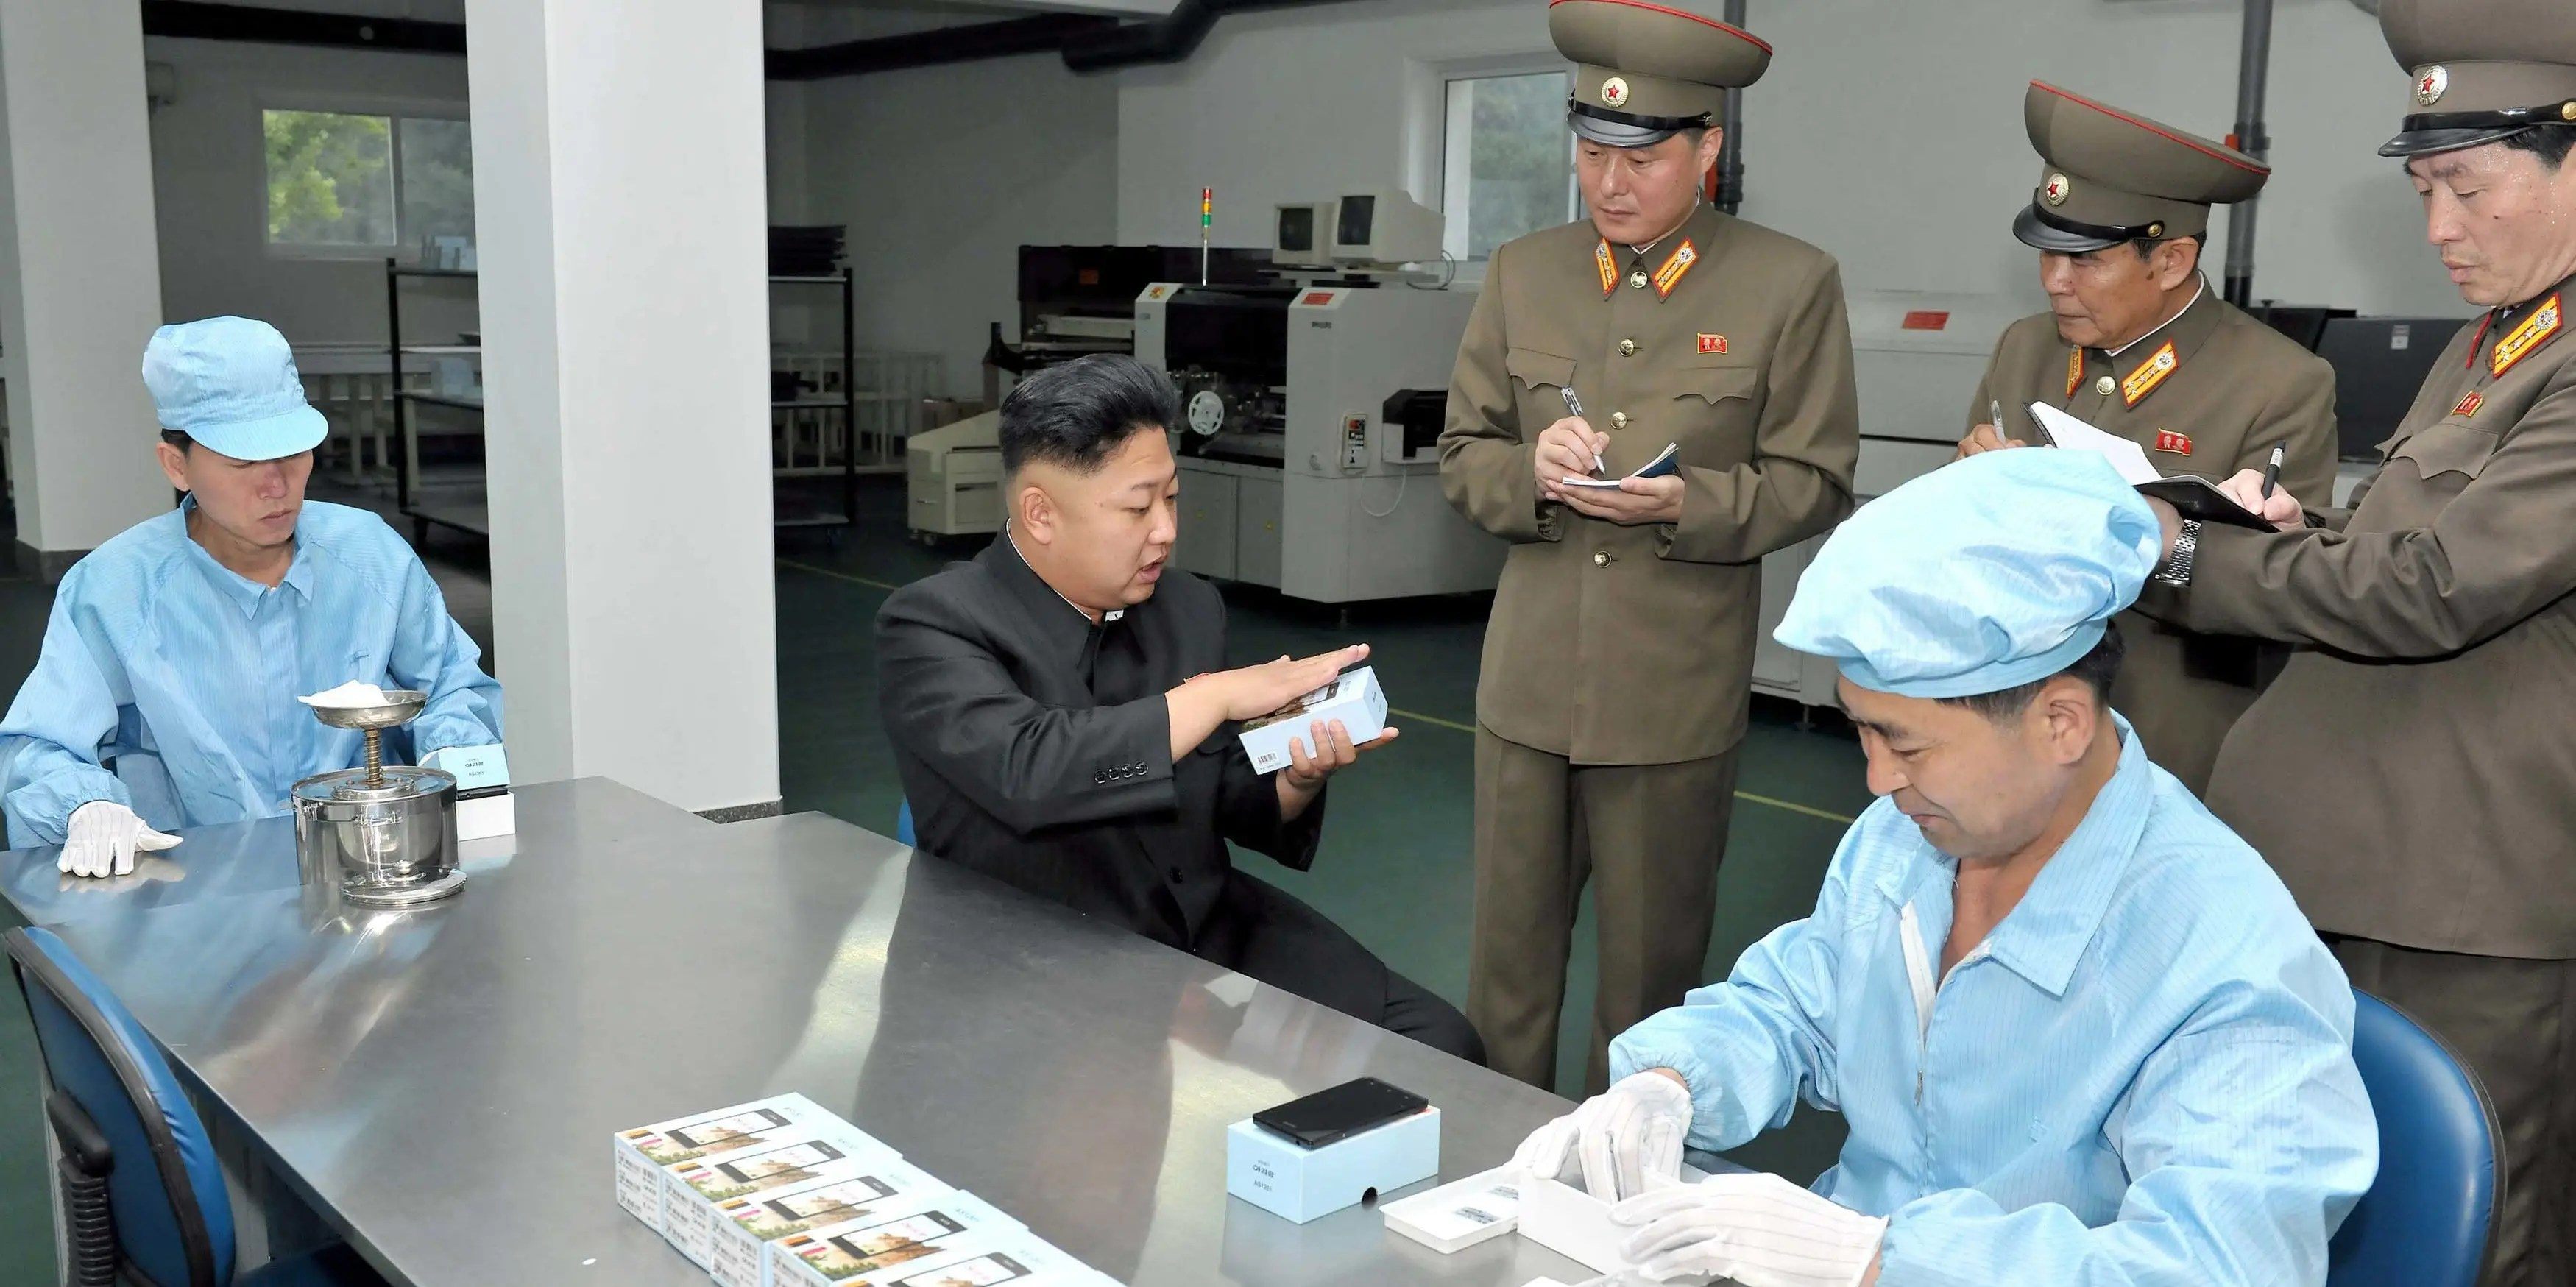 Here's North Korea's version of the iPhone